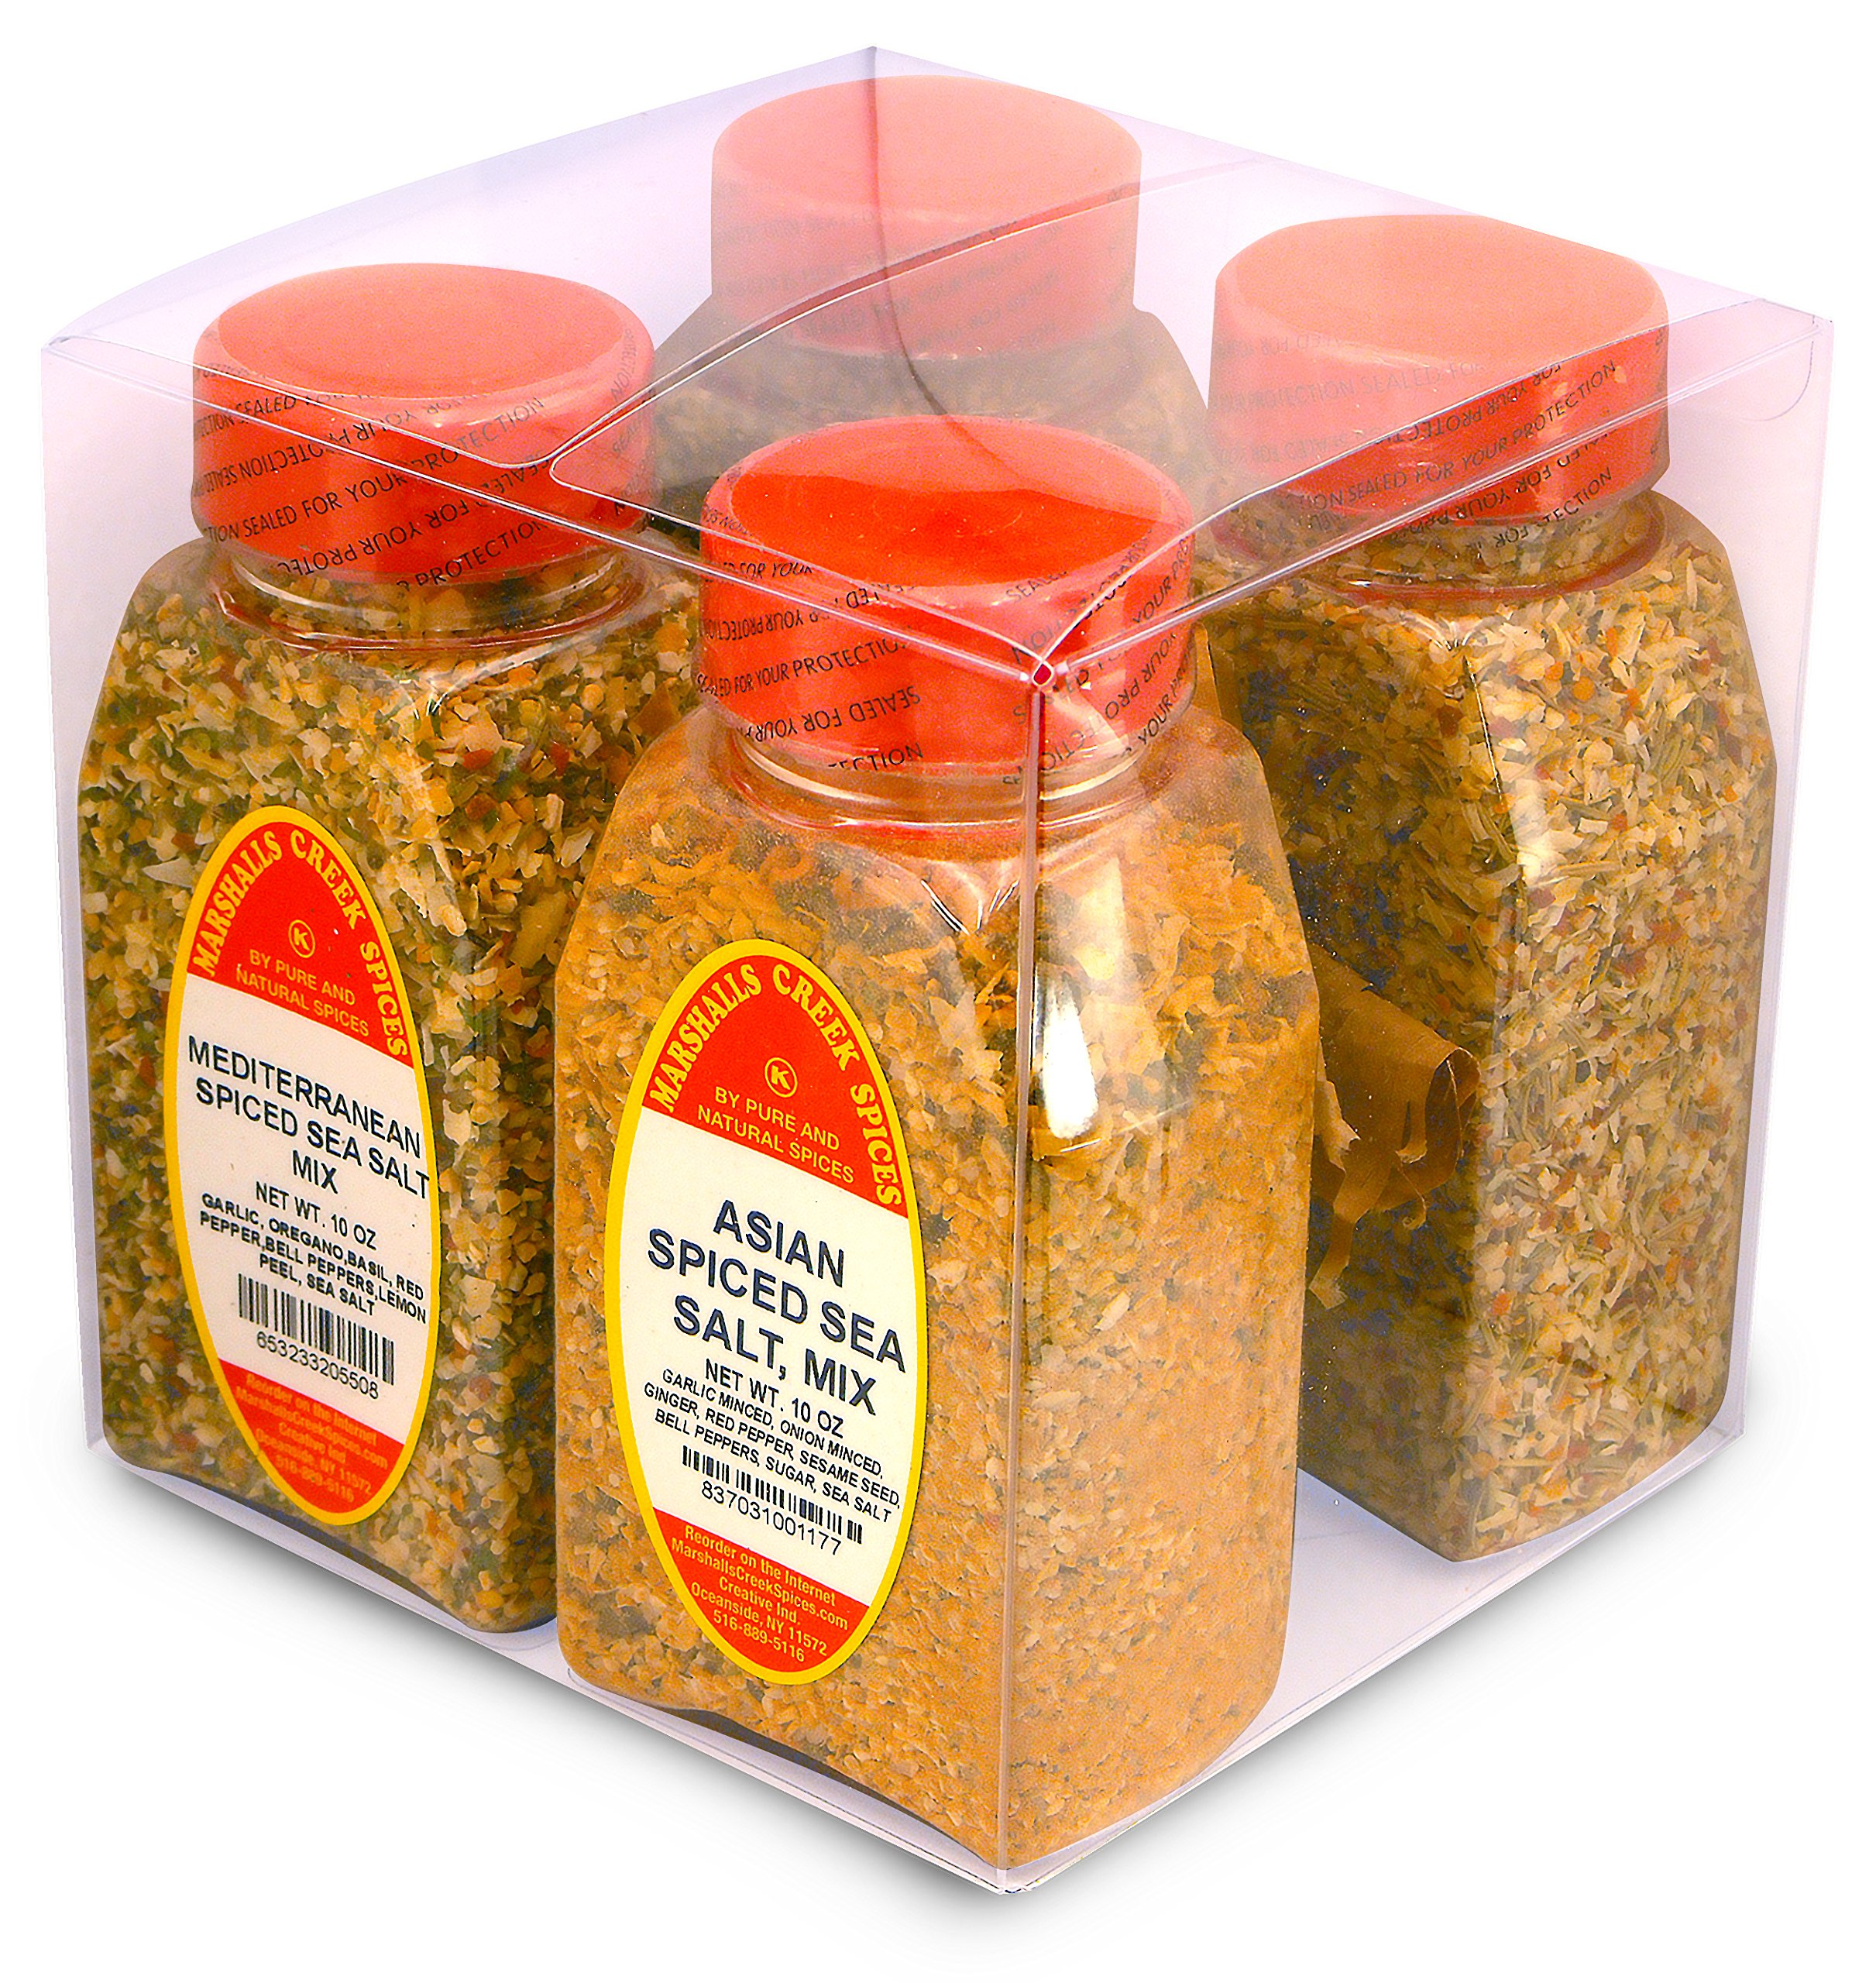 Marshalls Creek Spices Gift Cube, International Sea Salt Blends, 40 Ounce by Marshall's Creek Spices